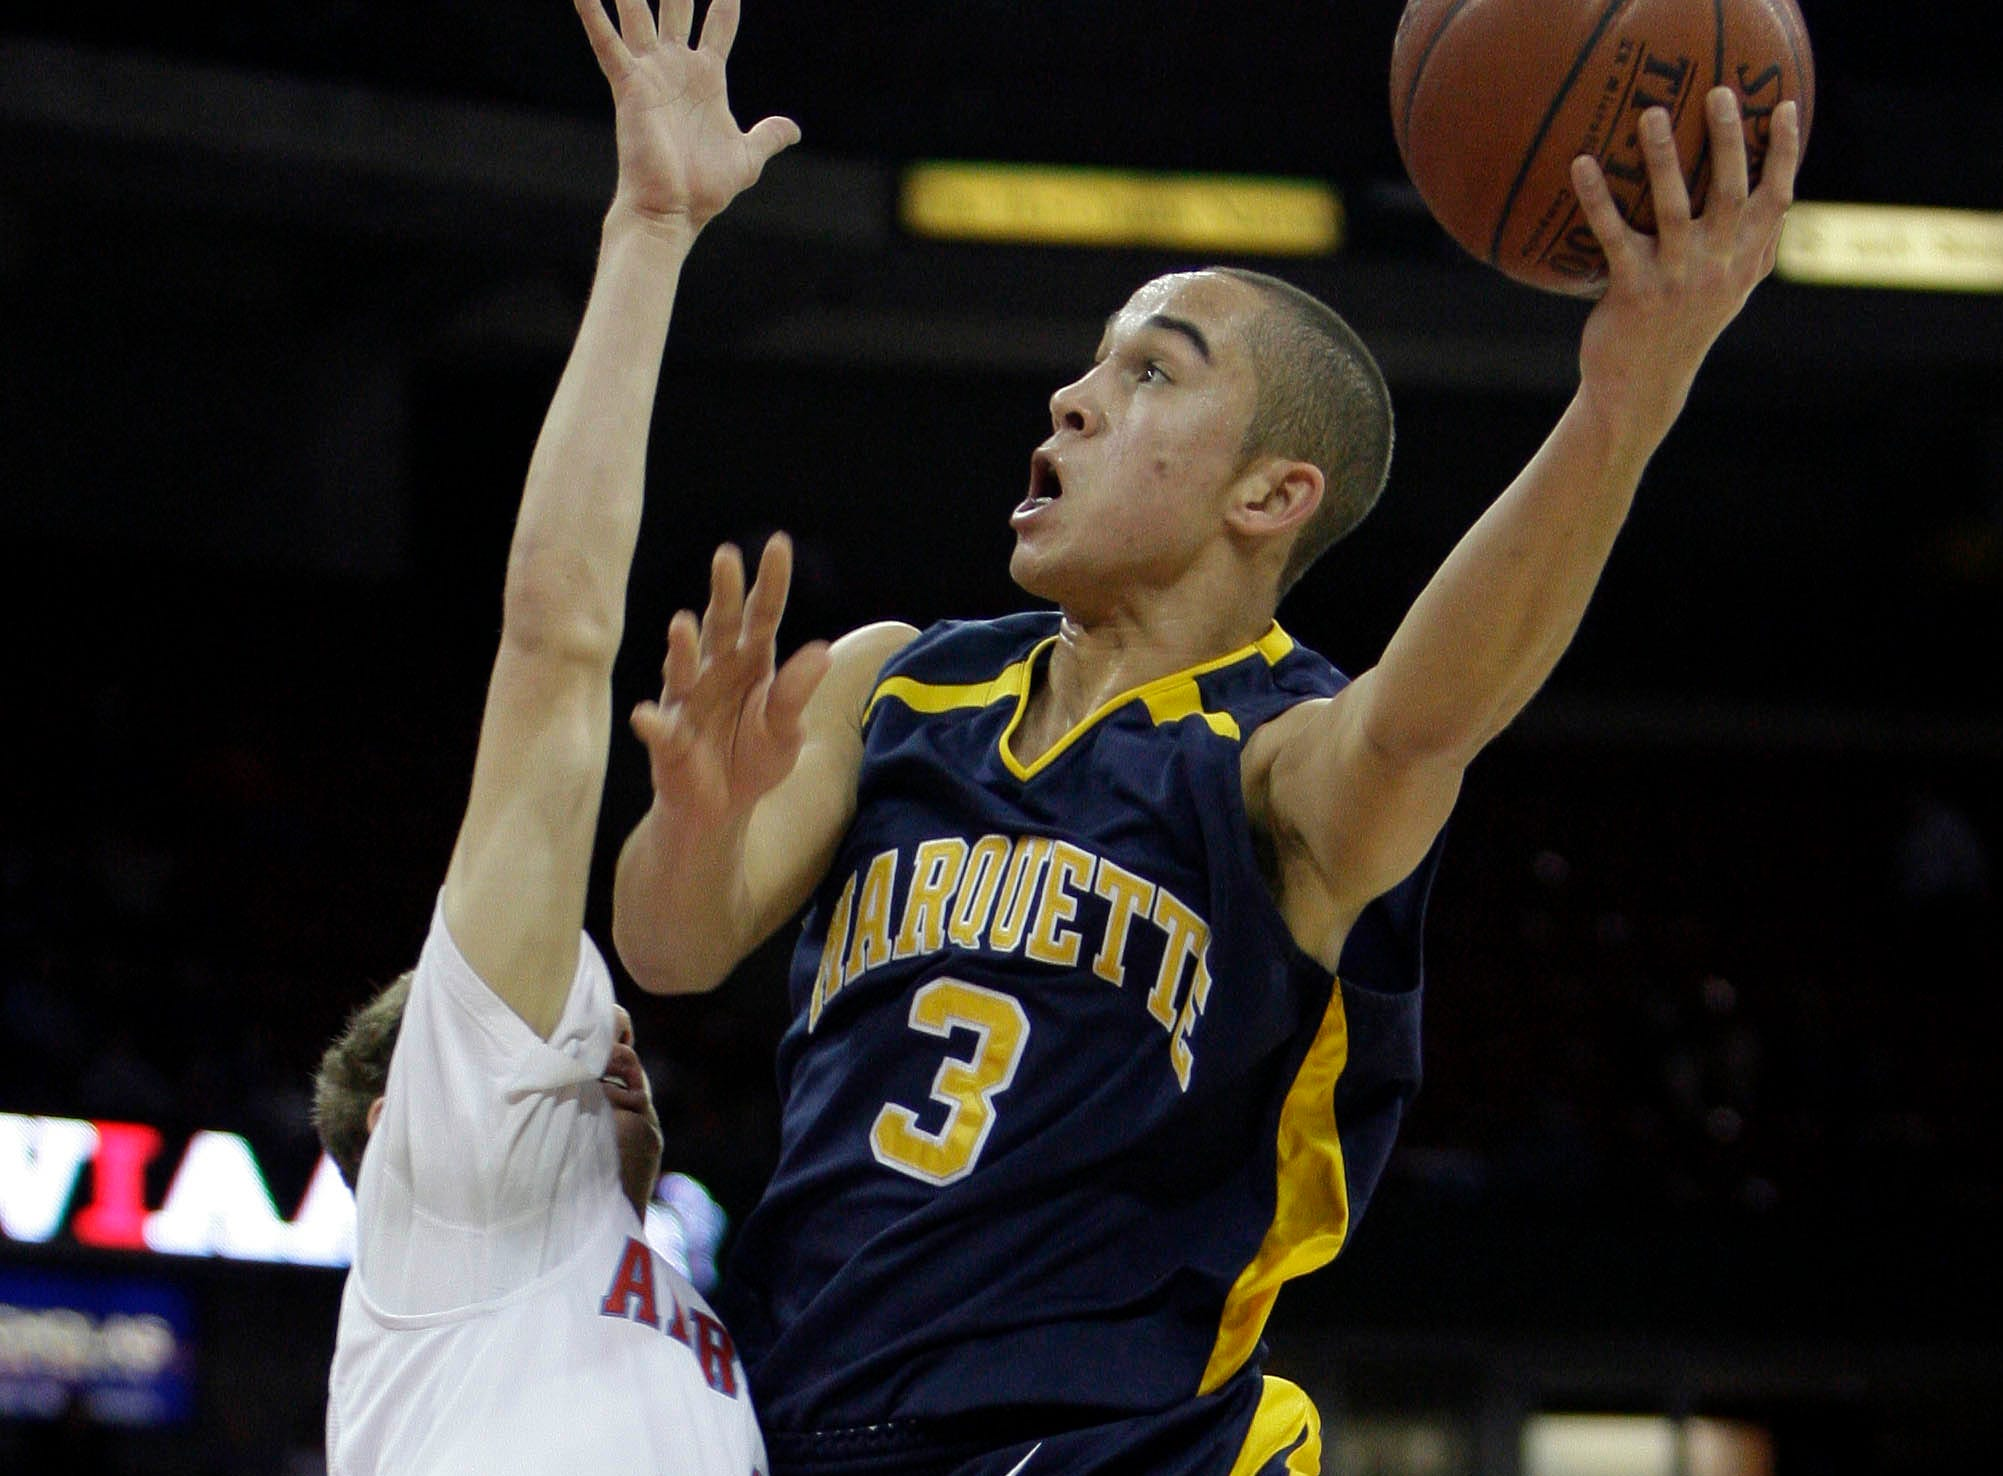 Marquette's Quinten Calloway makes a shot over Arrowhead's Andy Fox during the first half of their semifinal game Friday, March 19, 2010 during the WIAA state tournament at the Kohl Center in Madison, Wis.